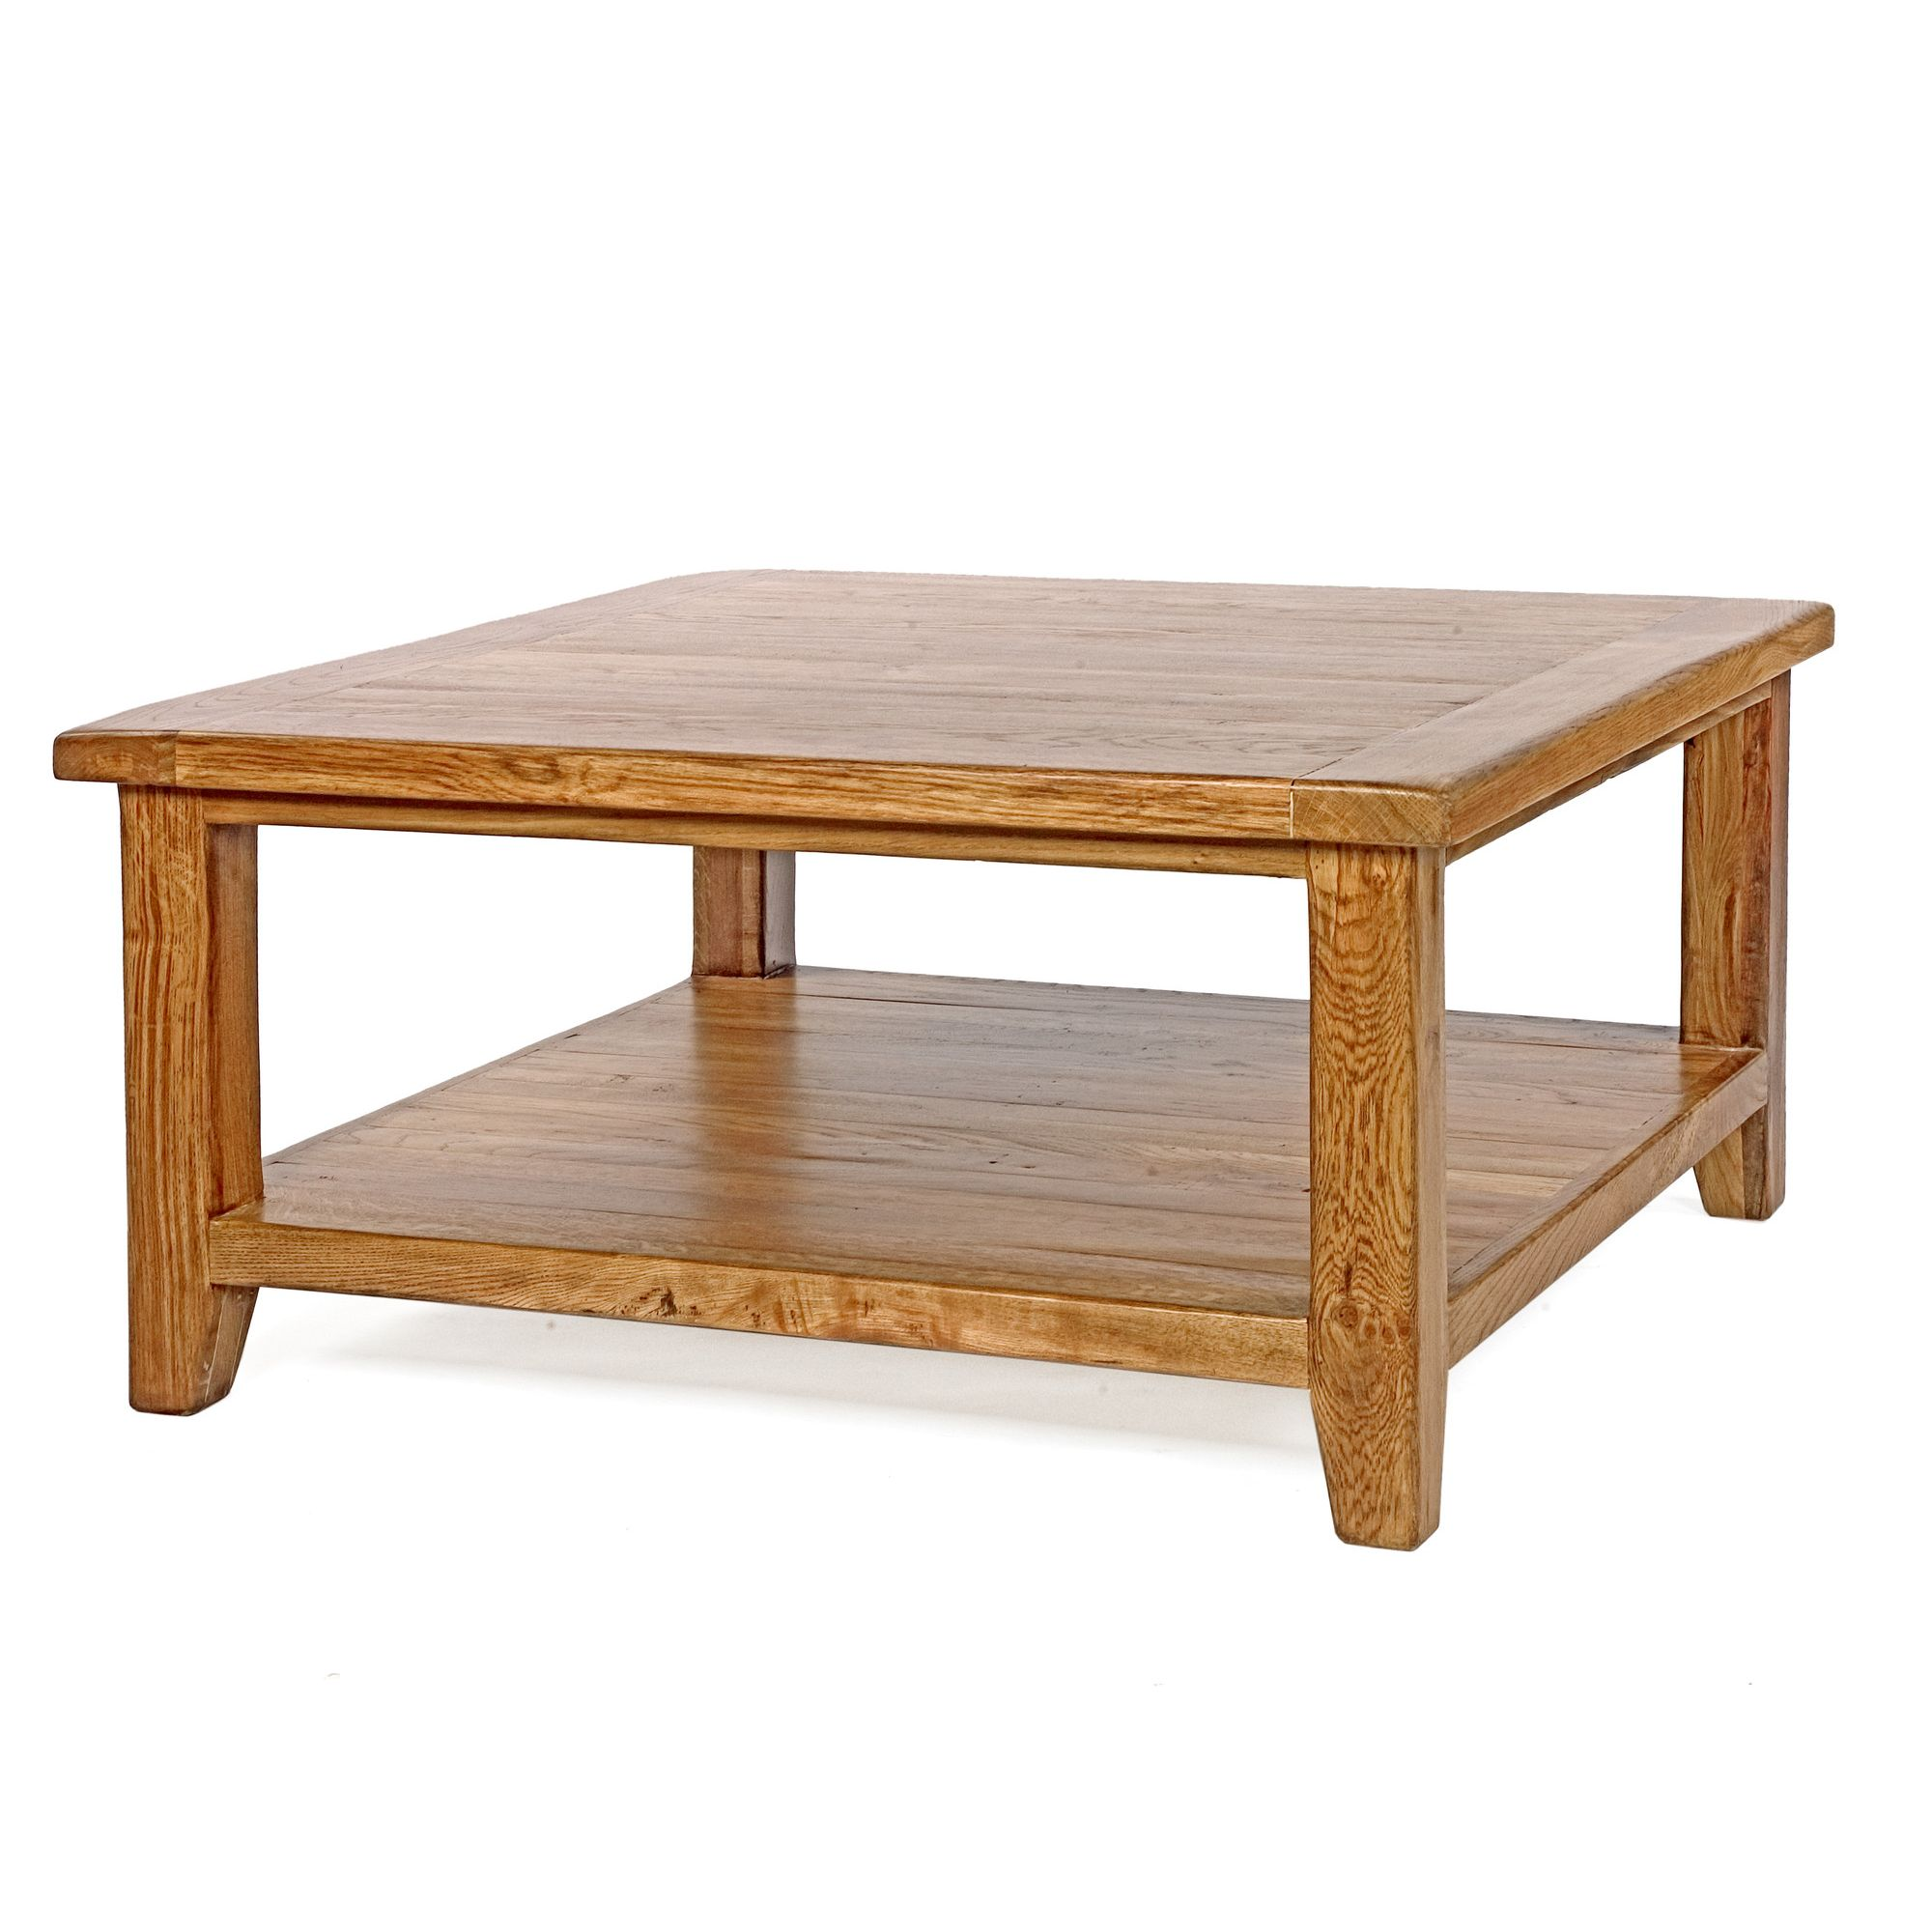 Wiseaction Florence Square Coffee Table at Tesco Direct